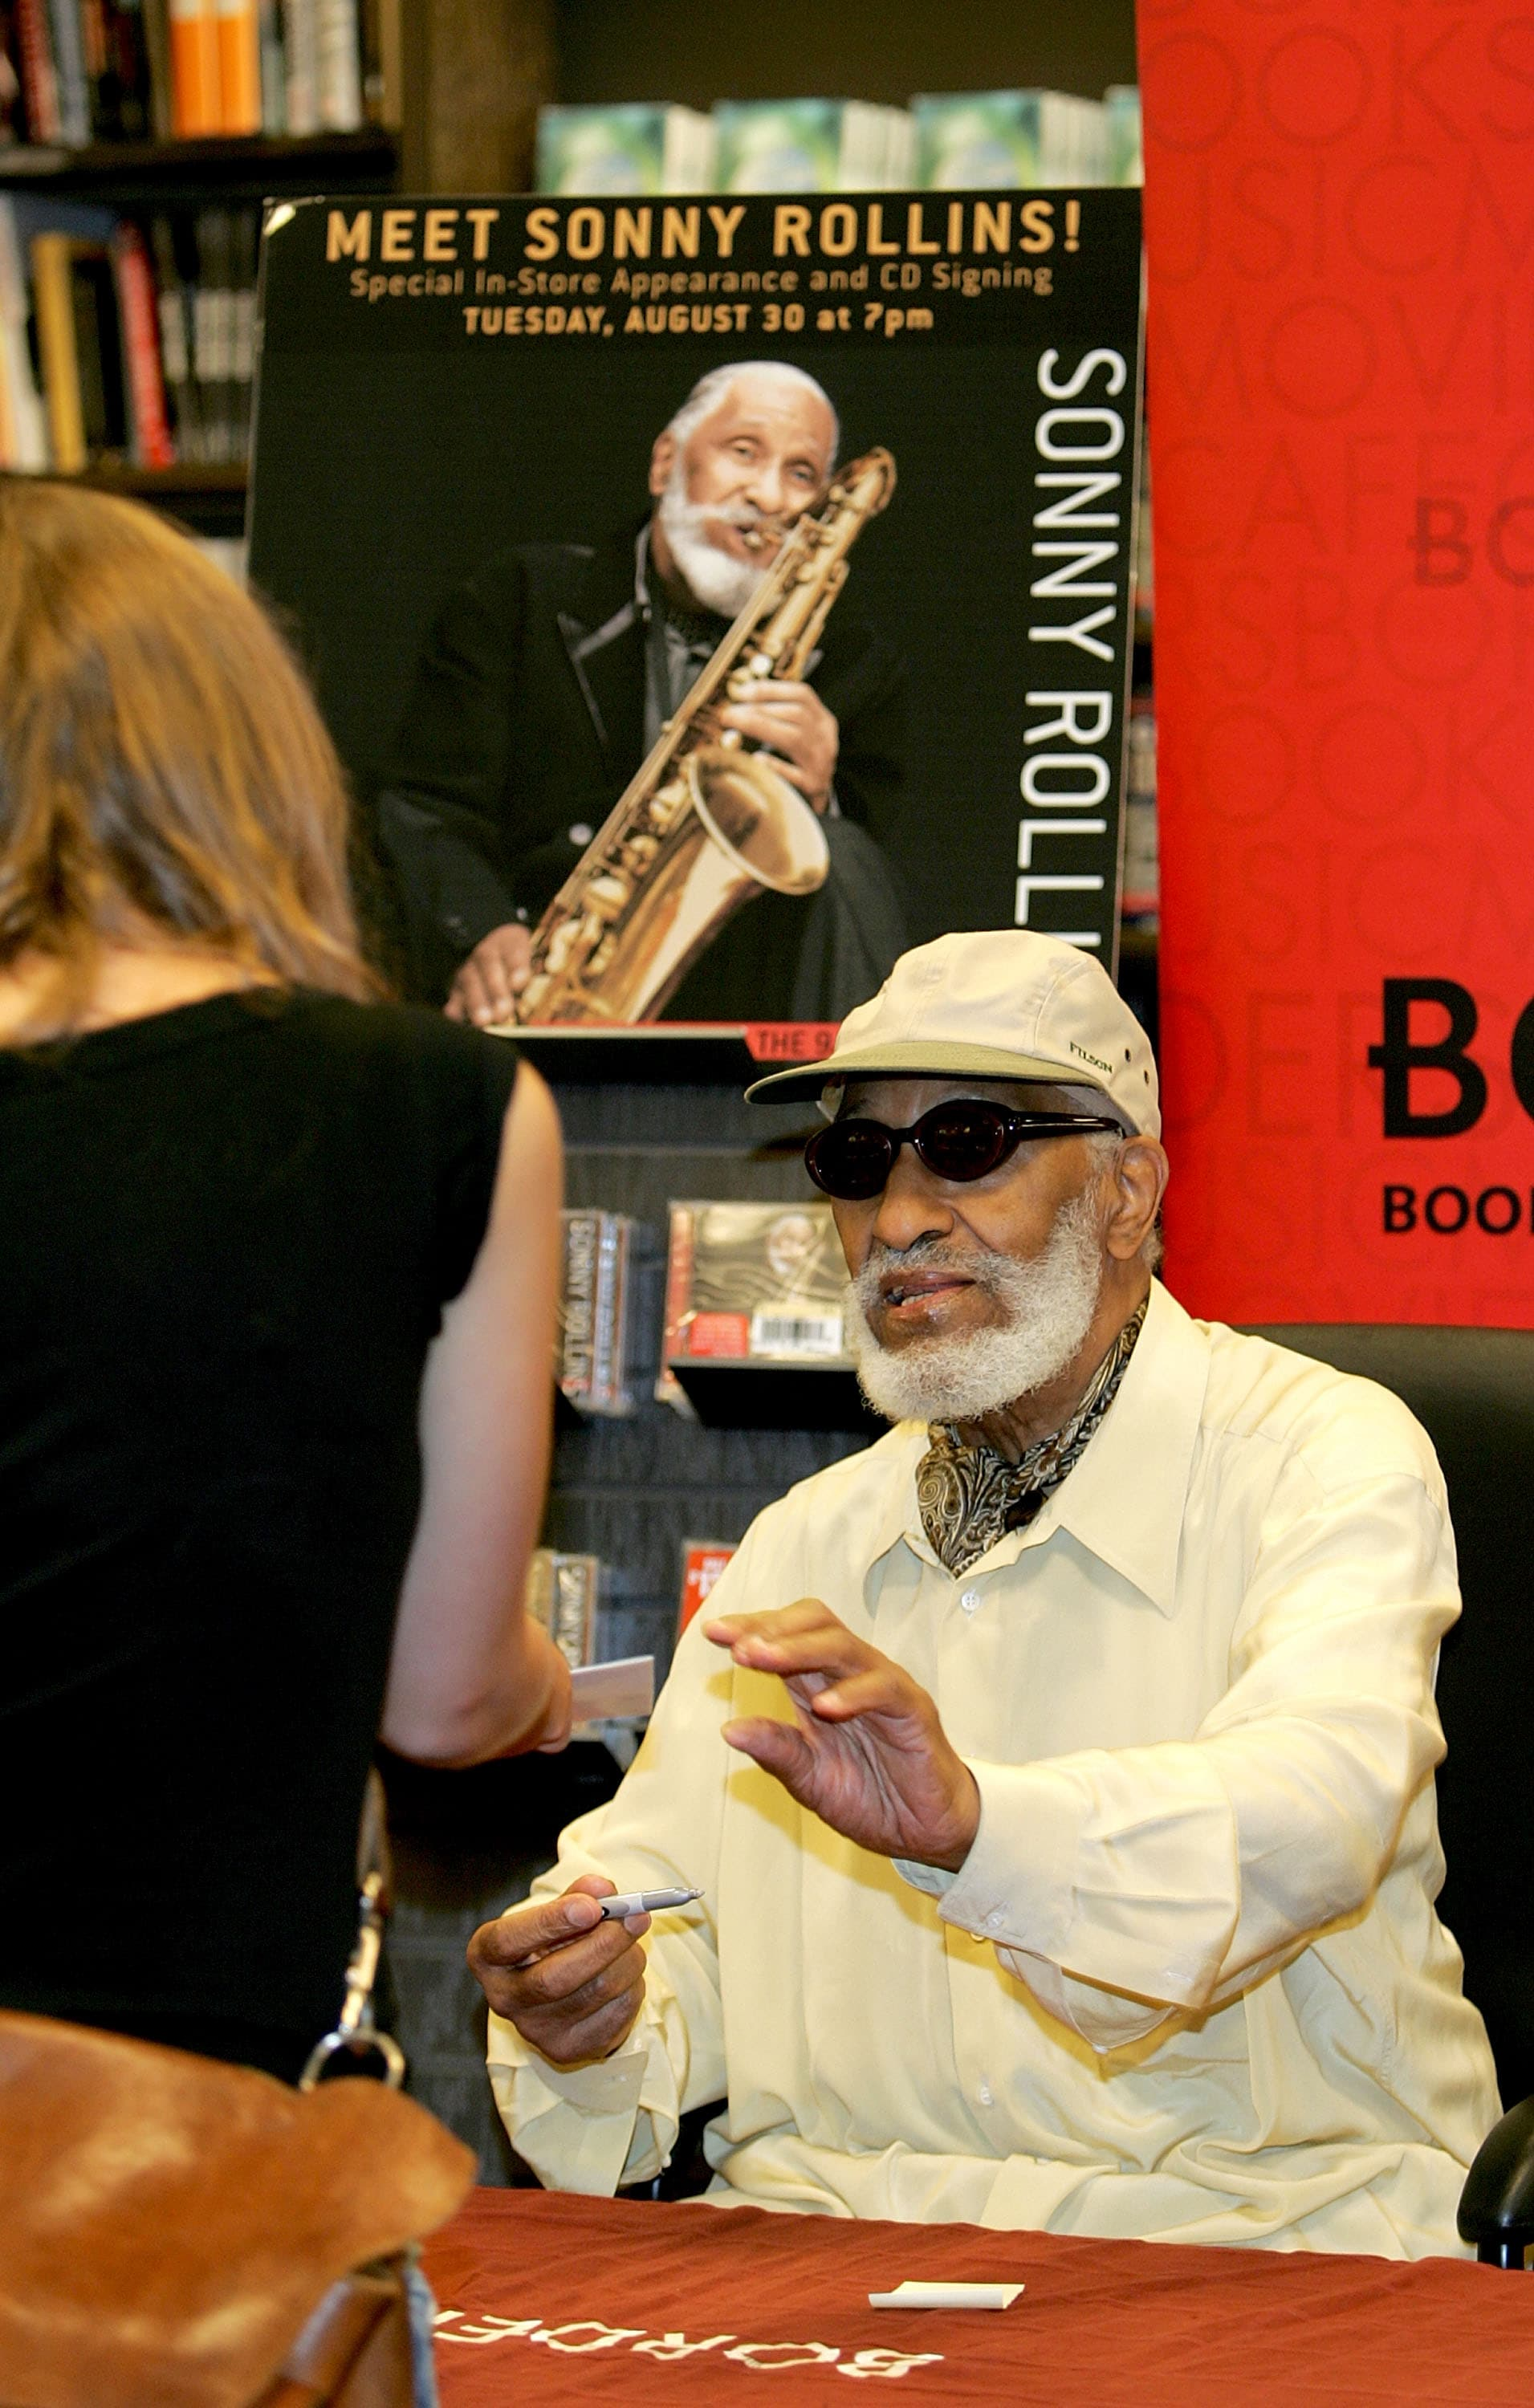 1603958017521_10 GettyImages-53550980.jpg - 2000: Sonny Rollins firma le copie del suo nuovo CD, Sonny Rollins al Borders Columbus Circle, a New York City.